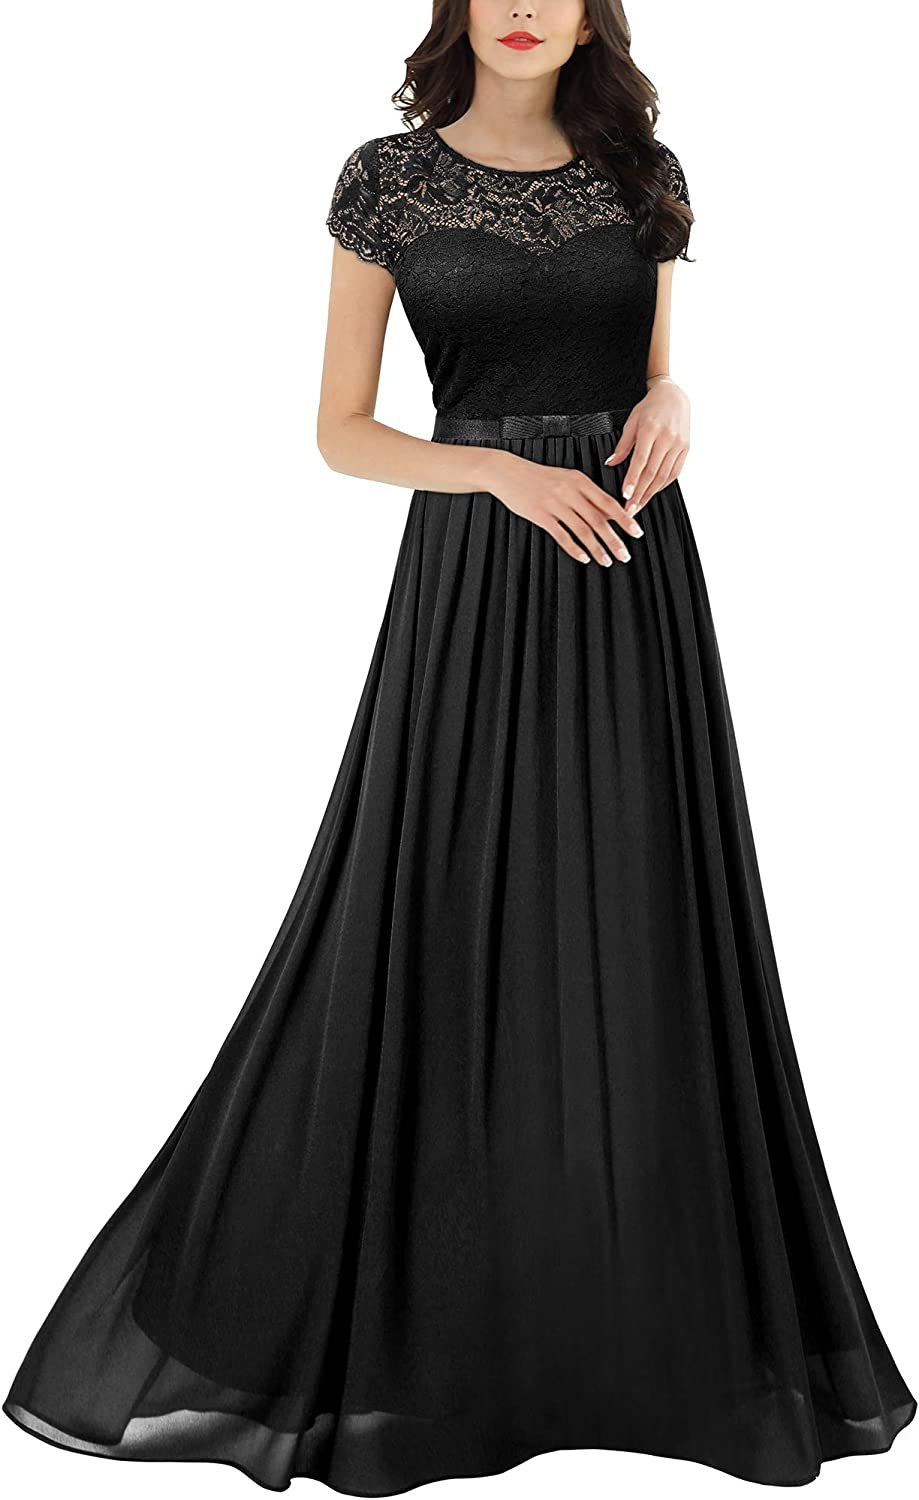 Miusol Women's Formal Floral Lace Bridesmaid High order Dress Wedding Our shop OFFers the best service Maxi